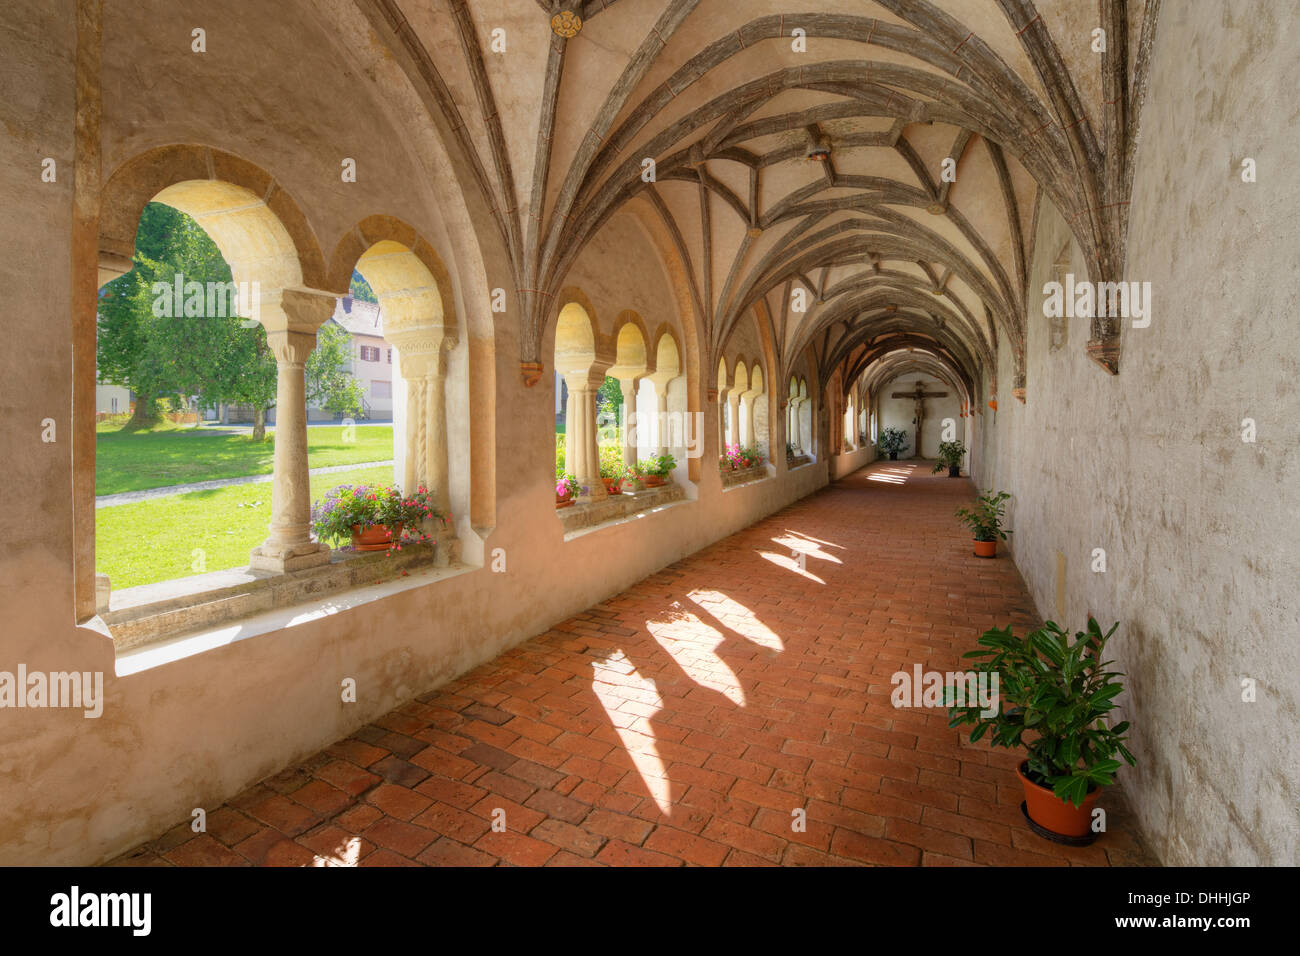 Cloister, former Collegiate Church of St. John the Baptist, Steingaden, Pfaffenwinkel region, Upper Bavaria, Bavaria, Germany - Stock Image